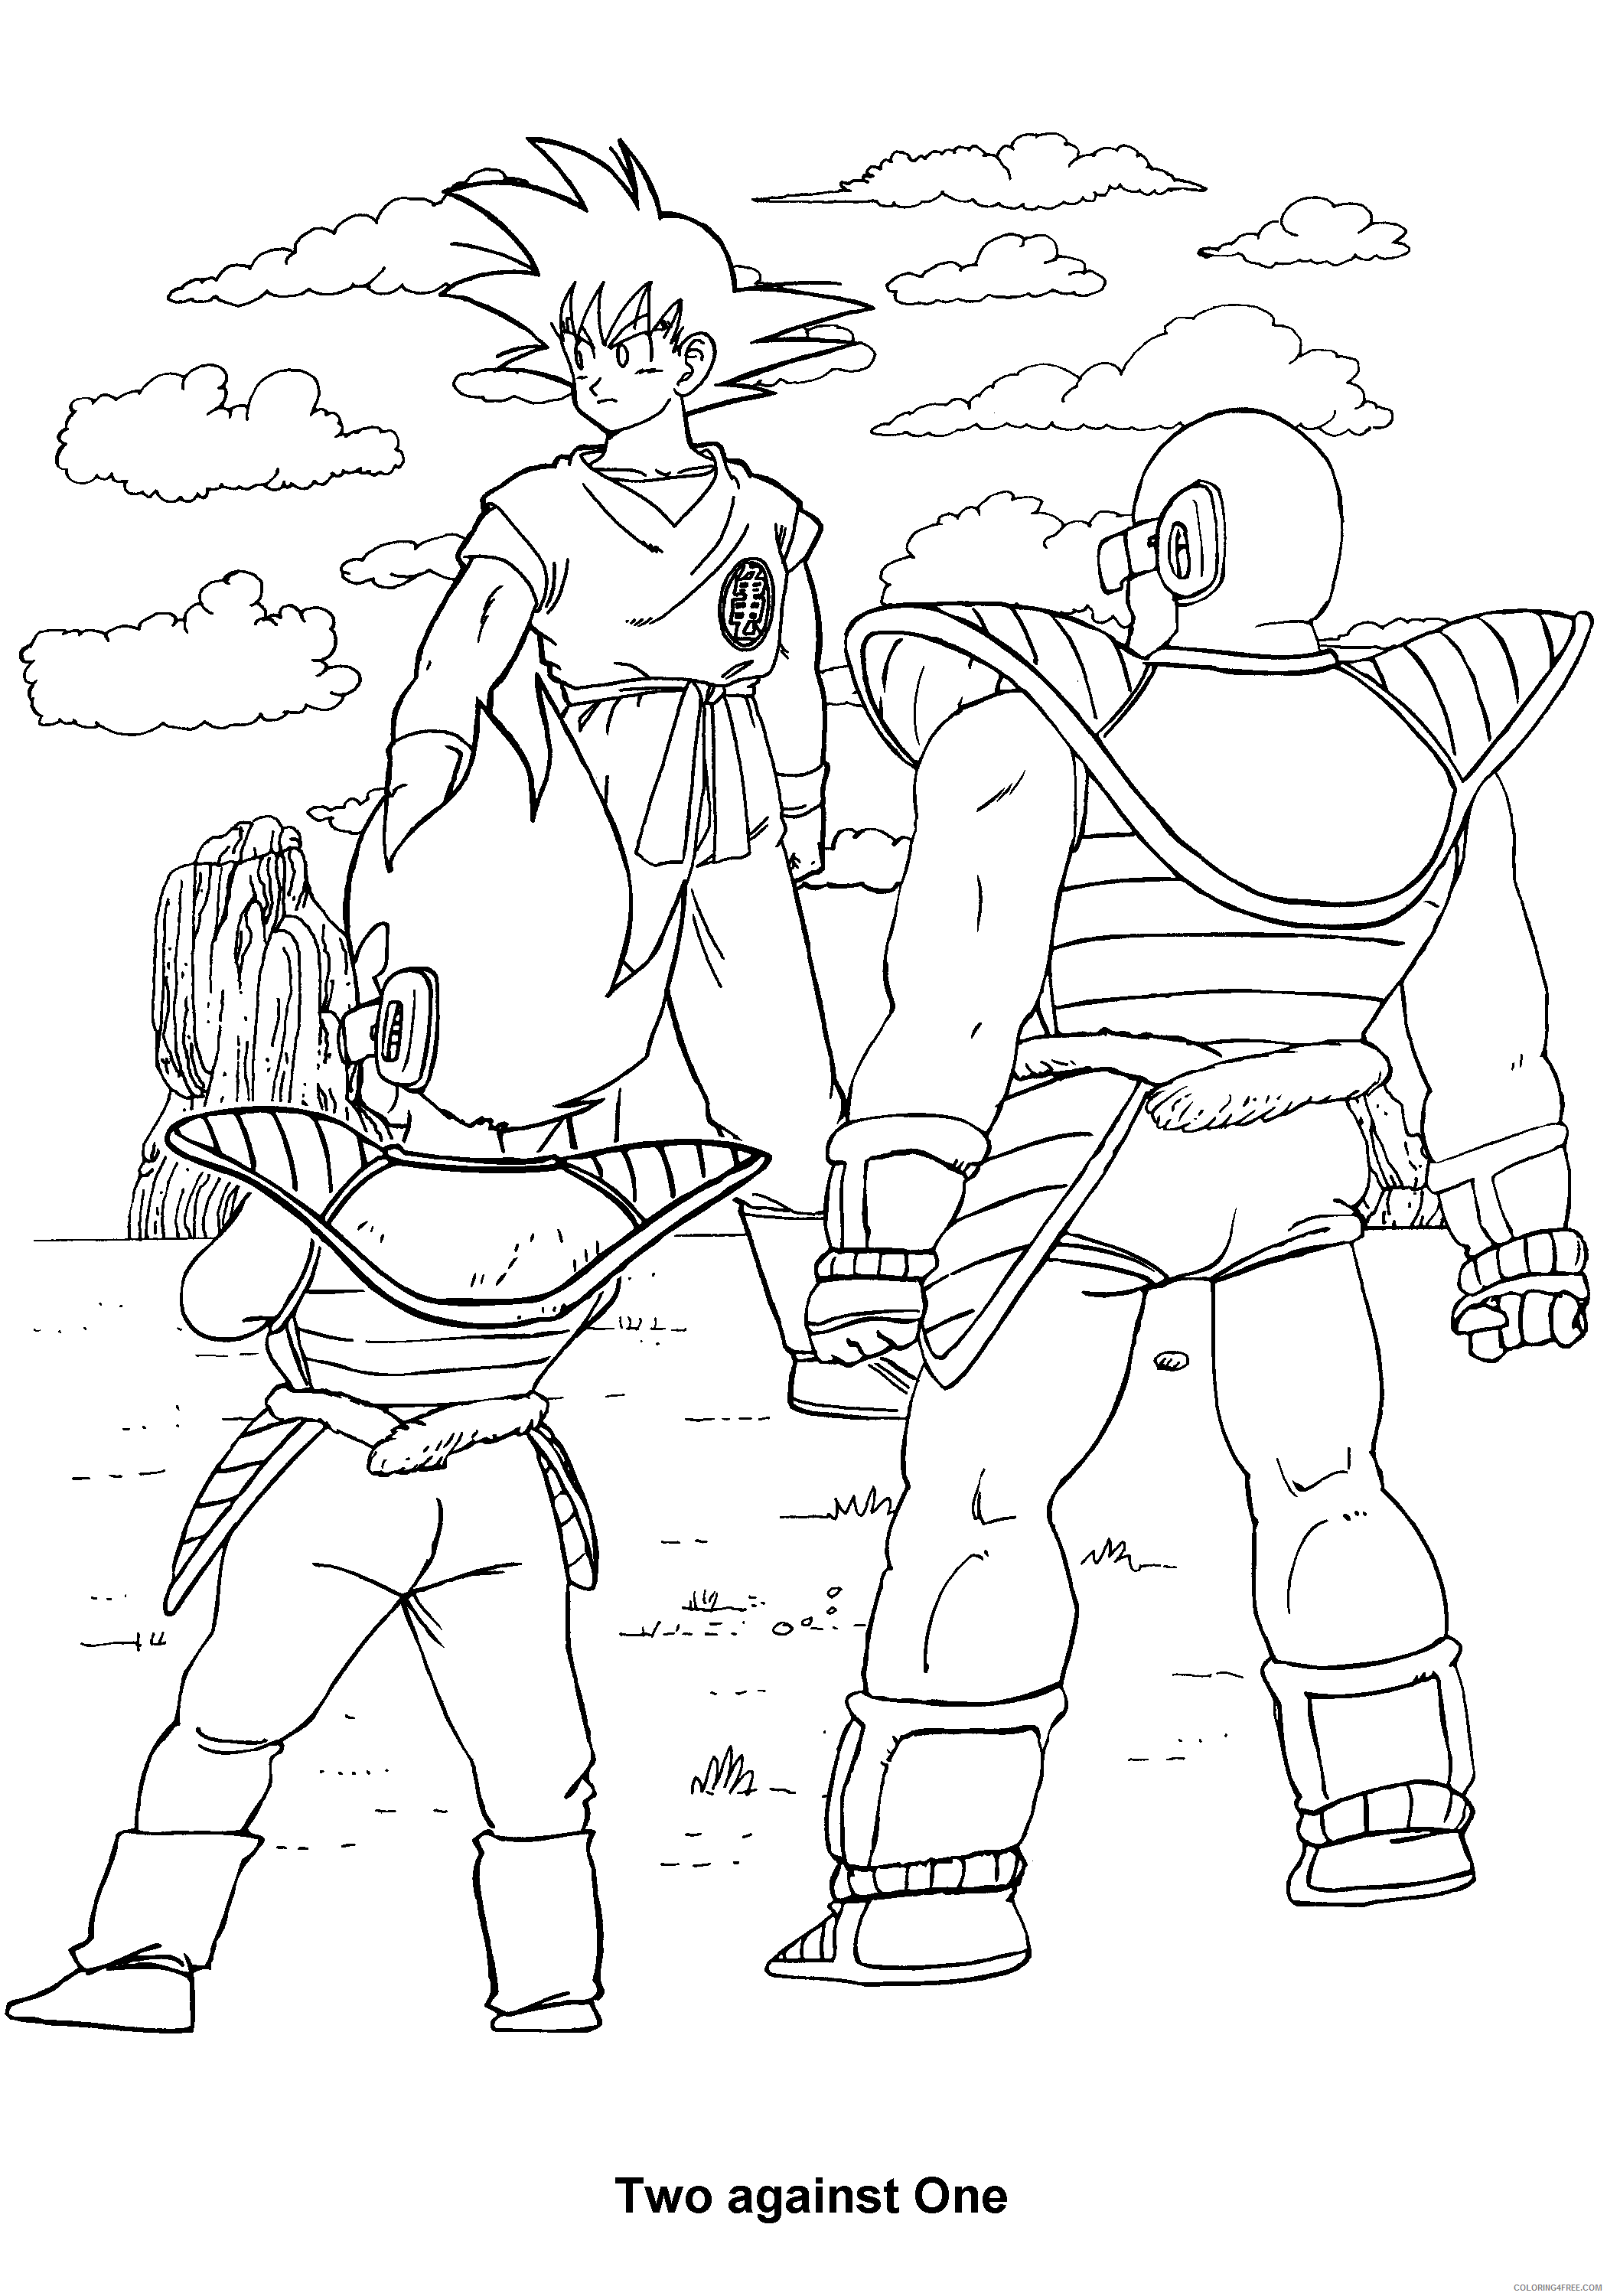 040 dragon ball z two against one Printable Coloring4free